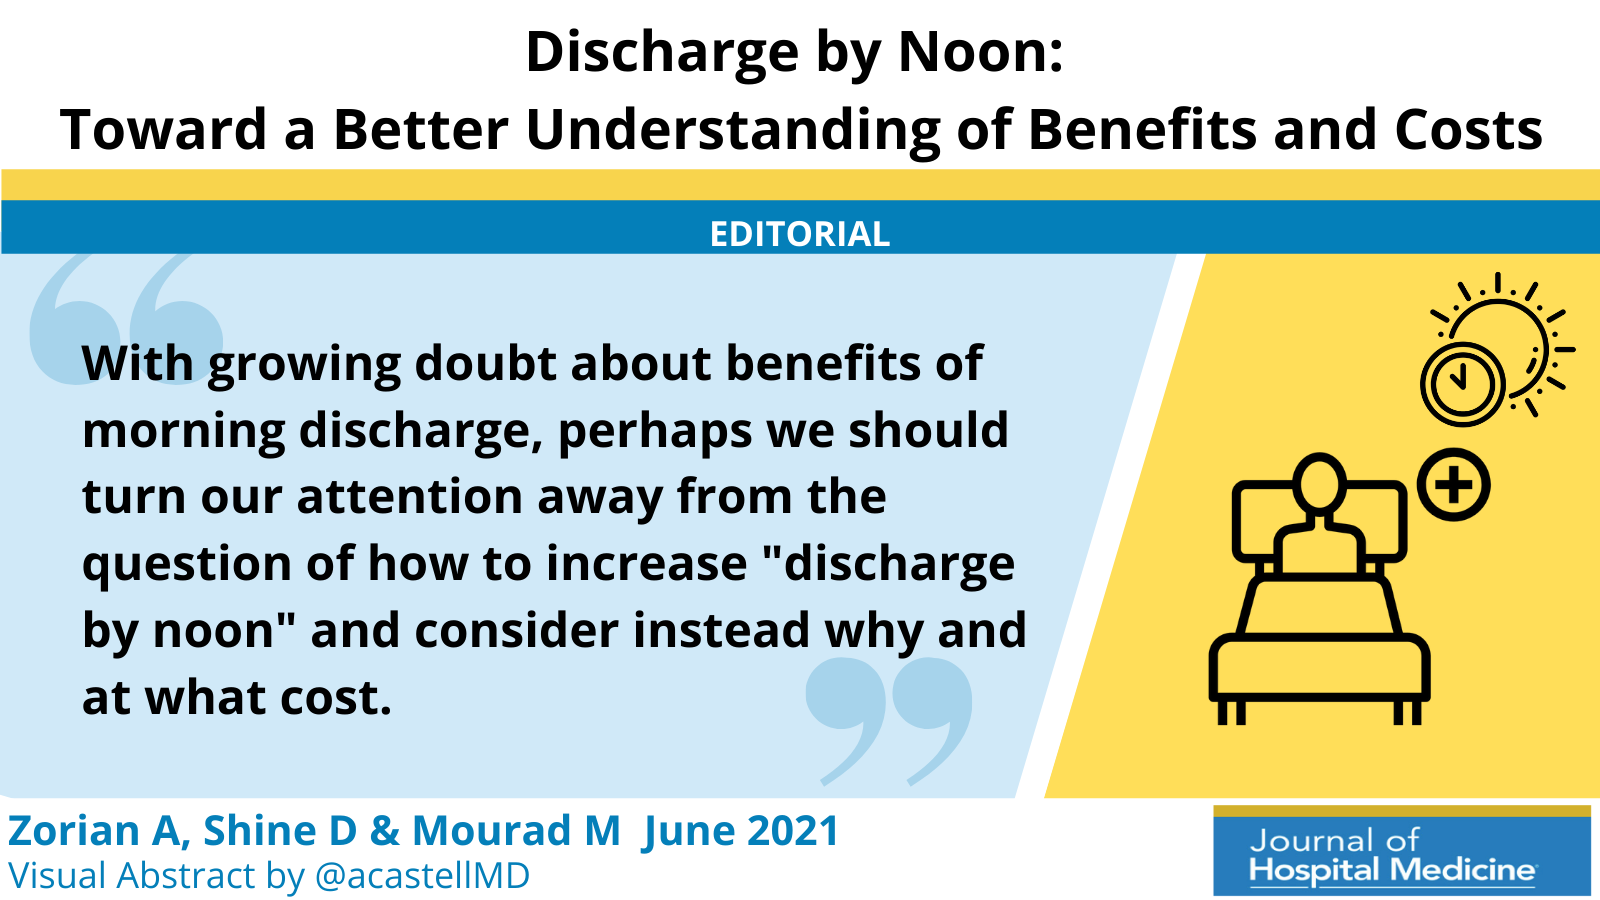 Discharge by Noon: Toward a Better Understanding of Benefits and Costs